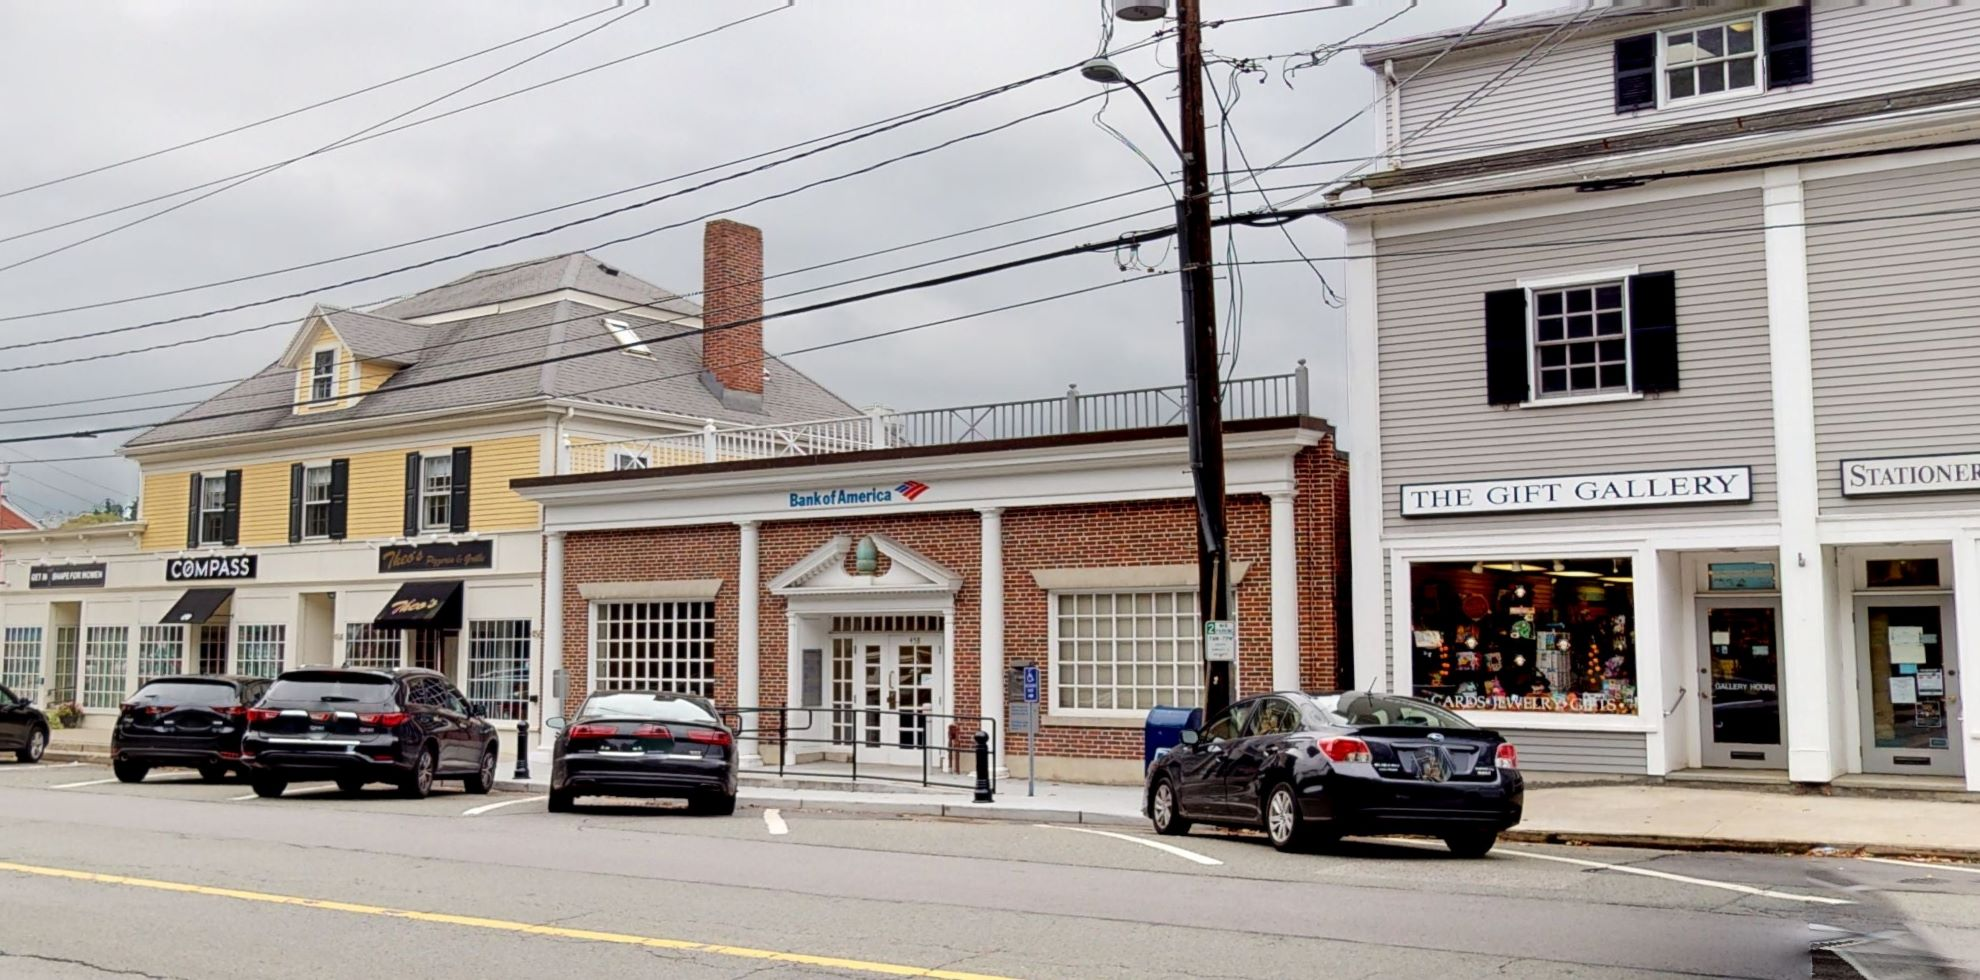 Bank of America financial center with walk-up ATM   458 Boston Post Rd, Weston, MA 02493